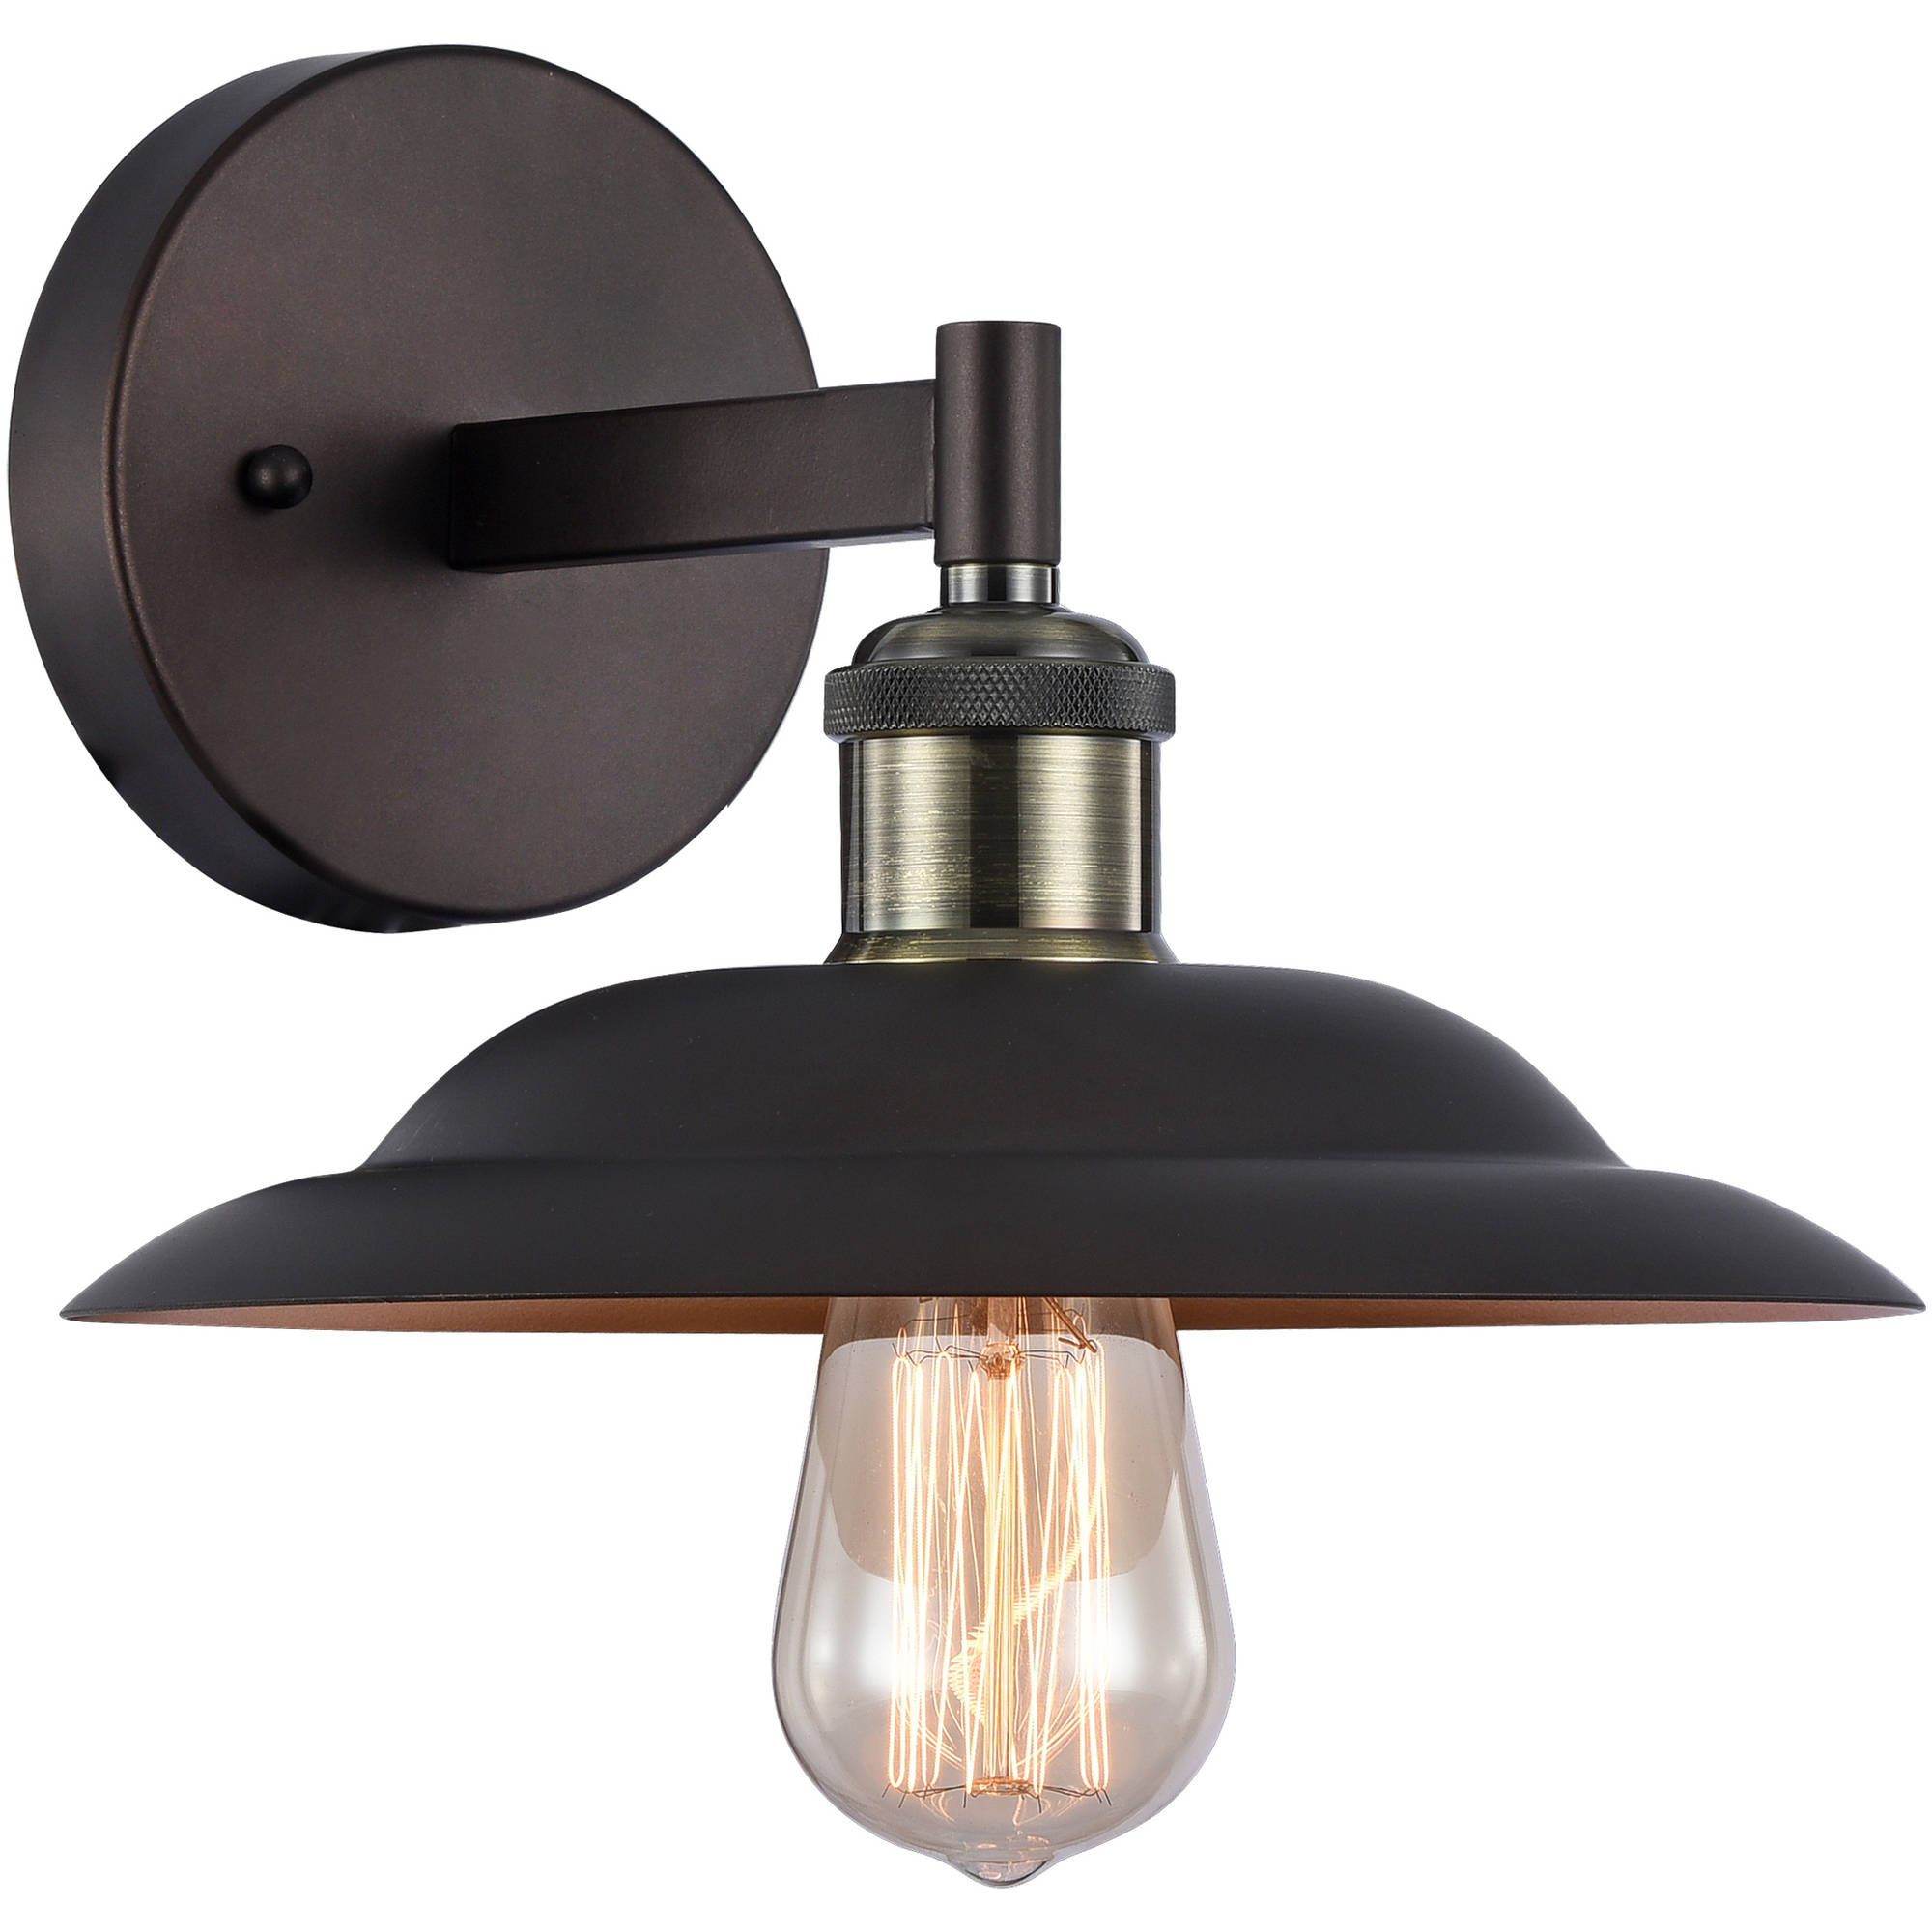 """Chloe Lighting Ironclad Industrial-Style 1-Light Rubbed Bronze Wall Sconce, 10"""" Wide by Chloe Lighting"""